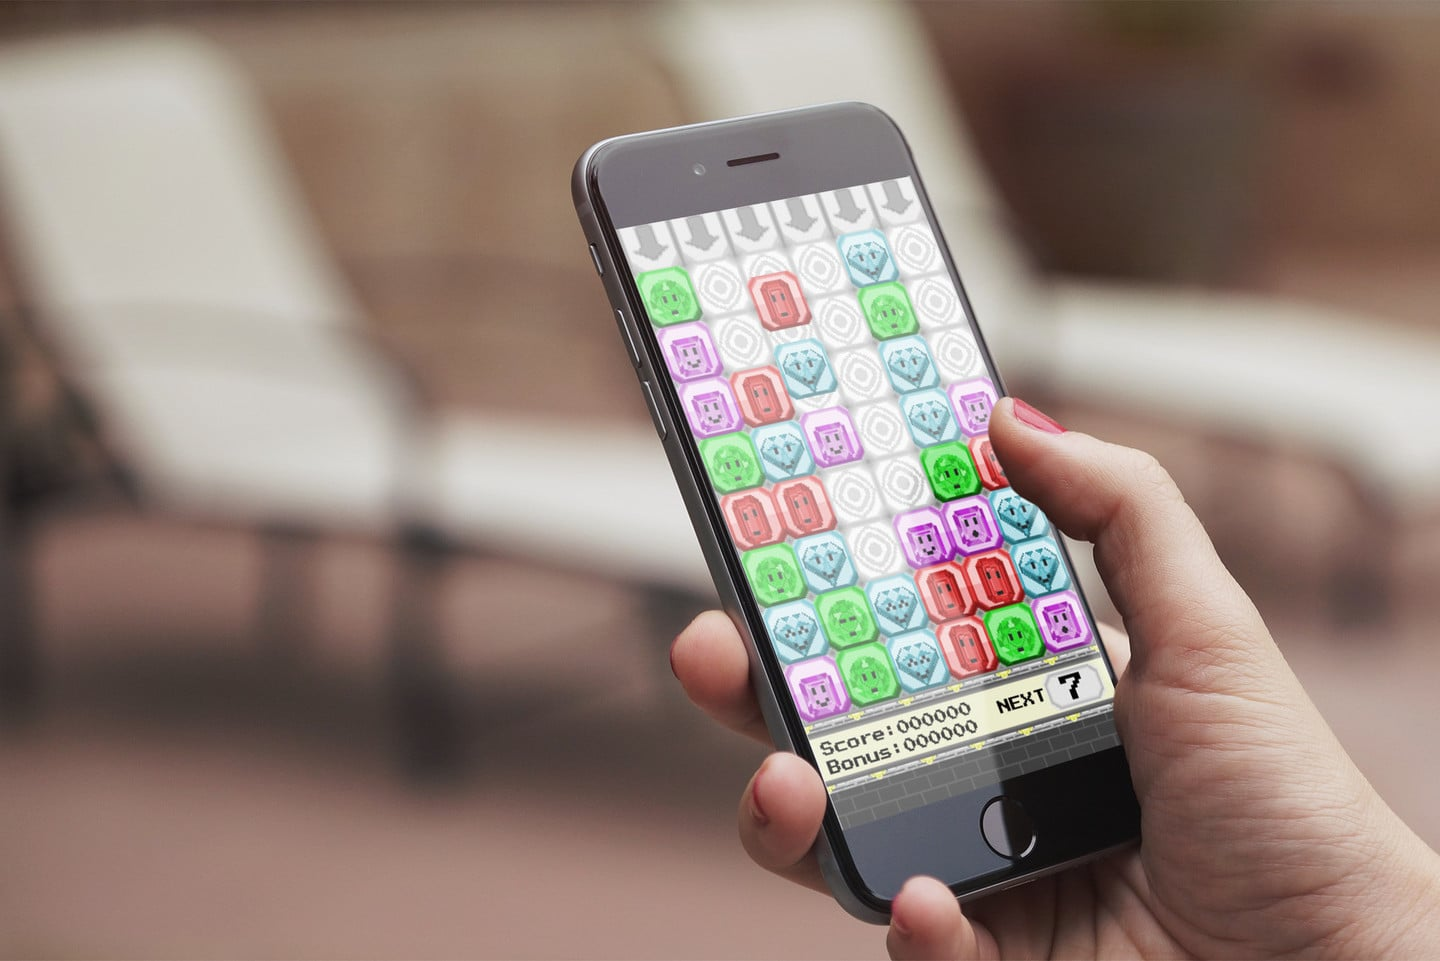 Blocktactic is a Surprisingly Challenging Match-Three Strategy Game